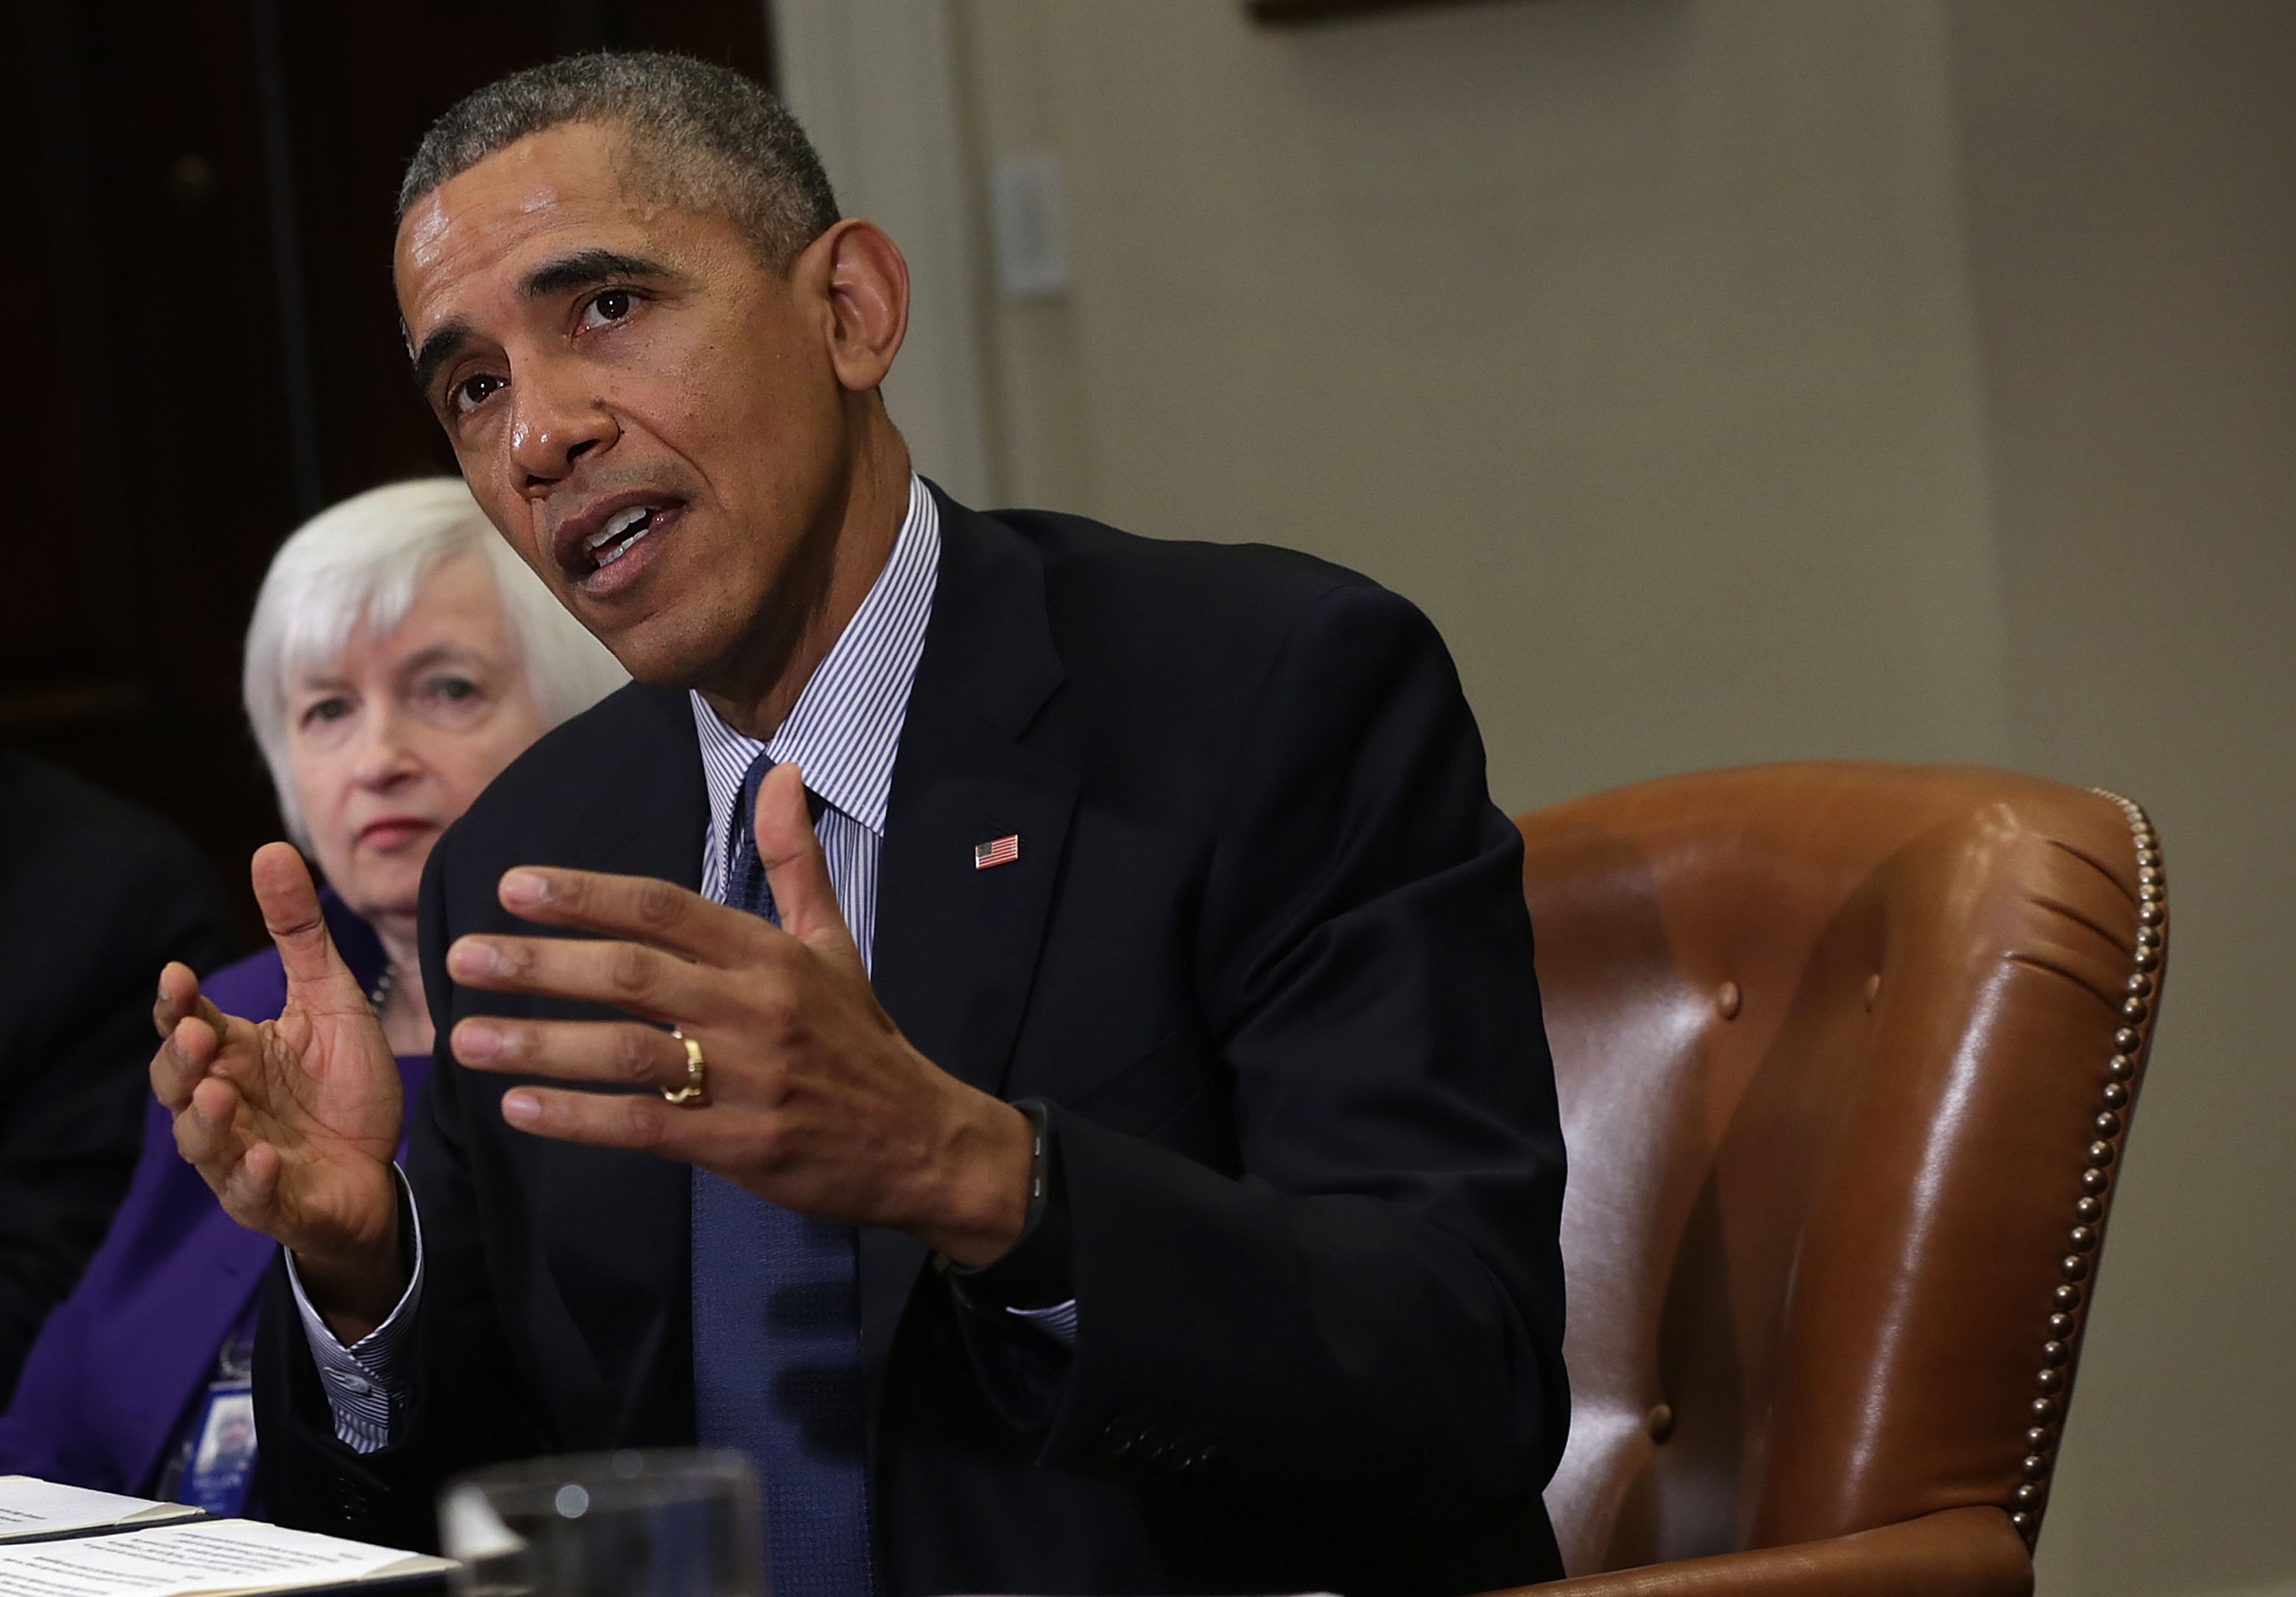 President Obama Meets With Financial Regulators On Wall Street Reform